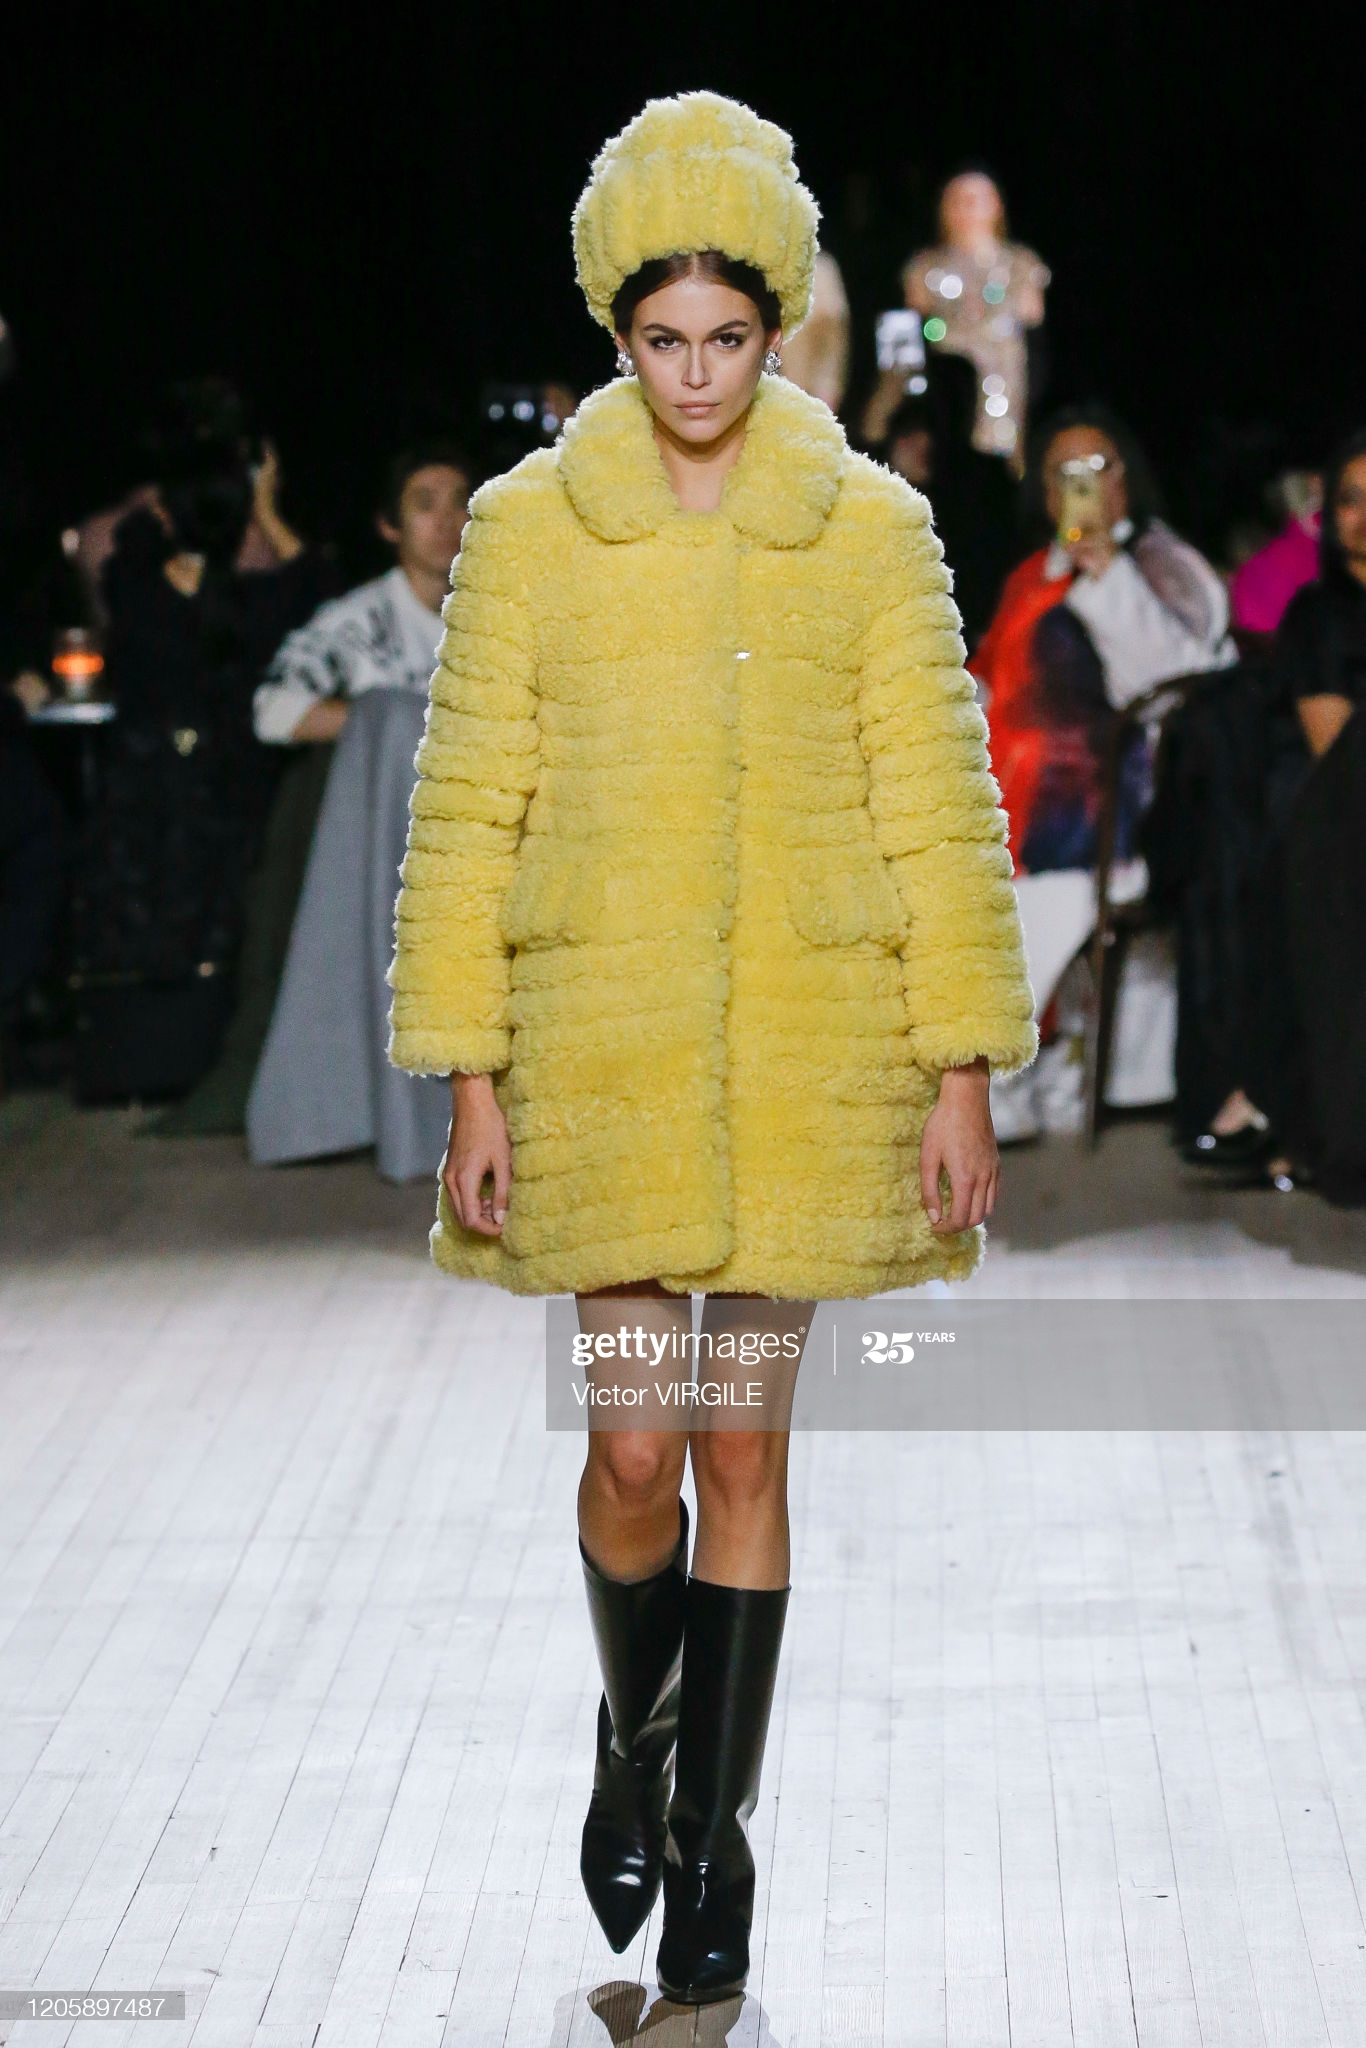 NEW YORK, NEW YORK - FEBRUARY 12: Kaia Gerber walks the runway at the Marc Jacobs Ready to Wear Fall/Winter 2020-2021 fashion show during New York Fashion Week on February 12, 2020 in New York City. (Photo by Victor VIRGILE/Gamma-Rapho via Getty Images)